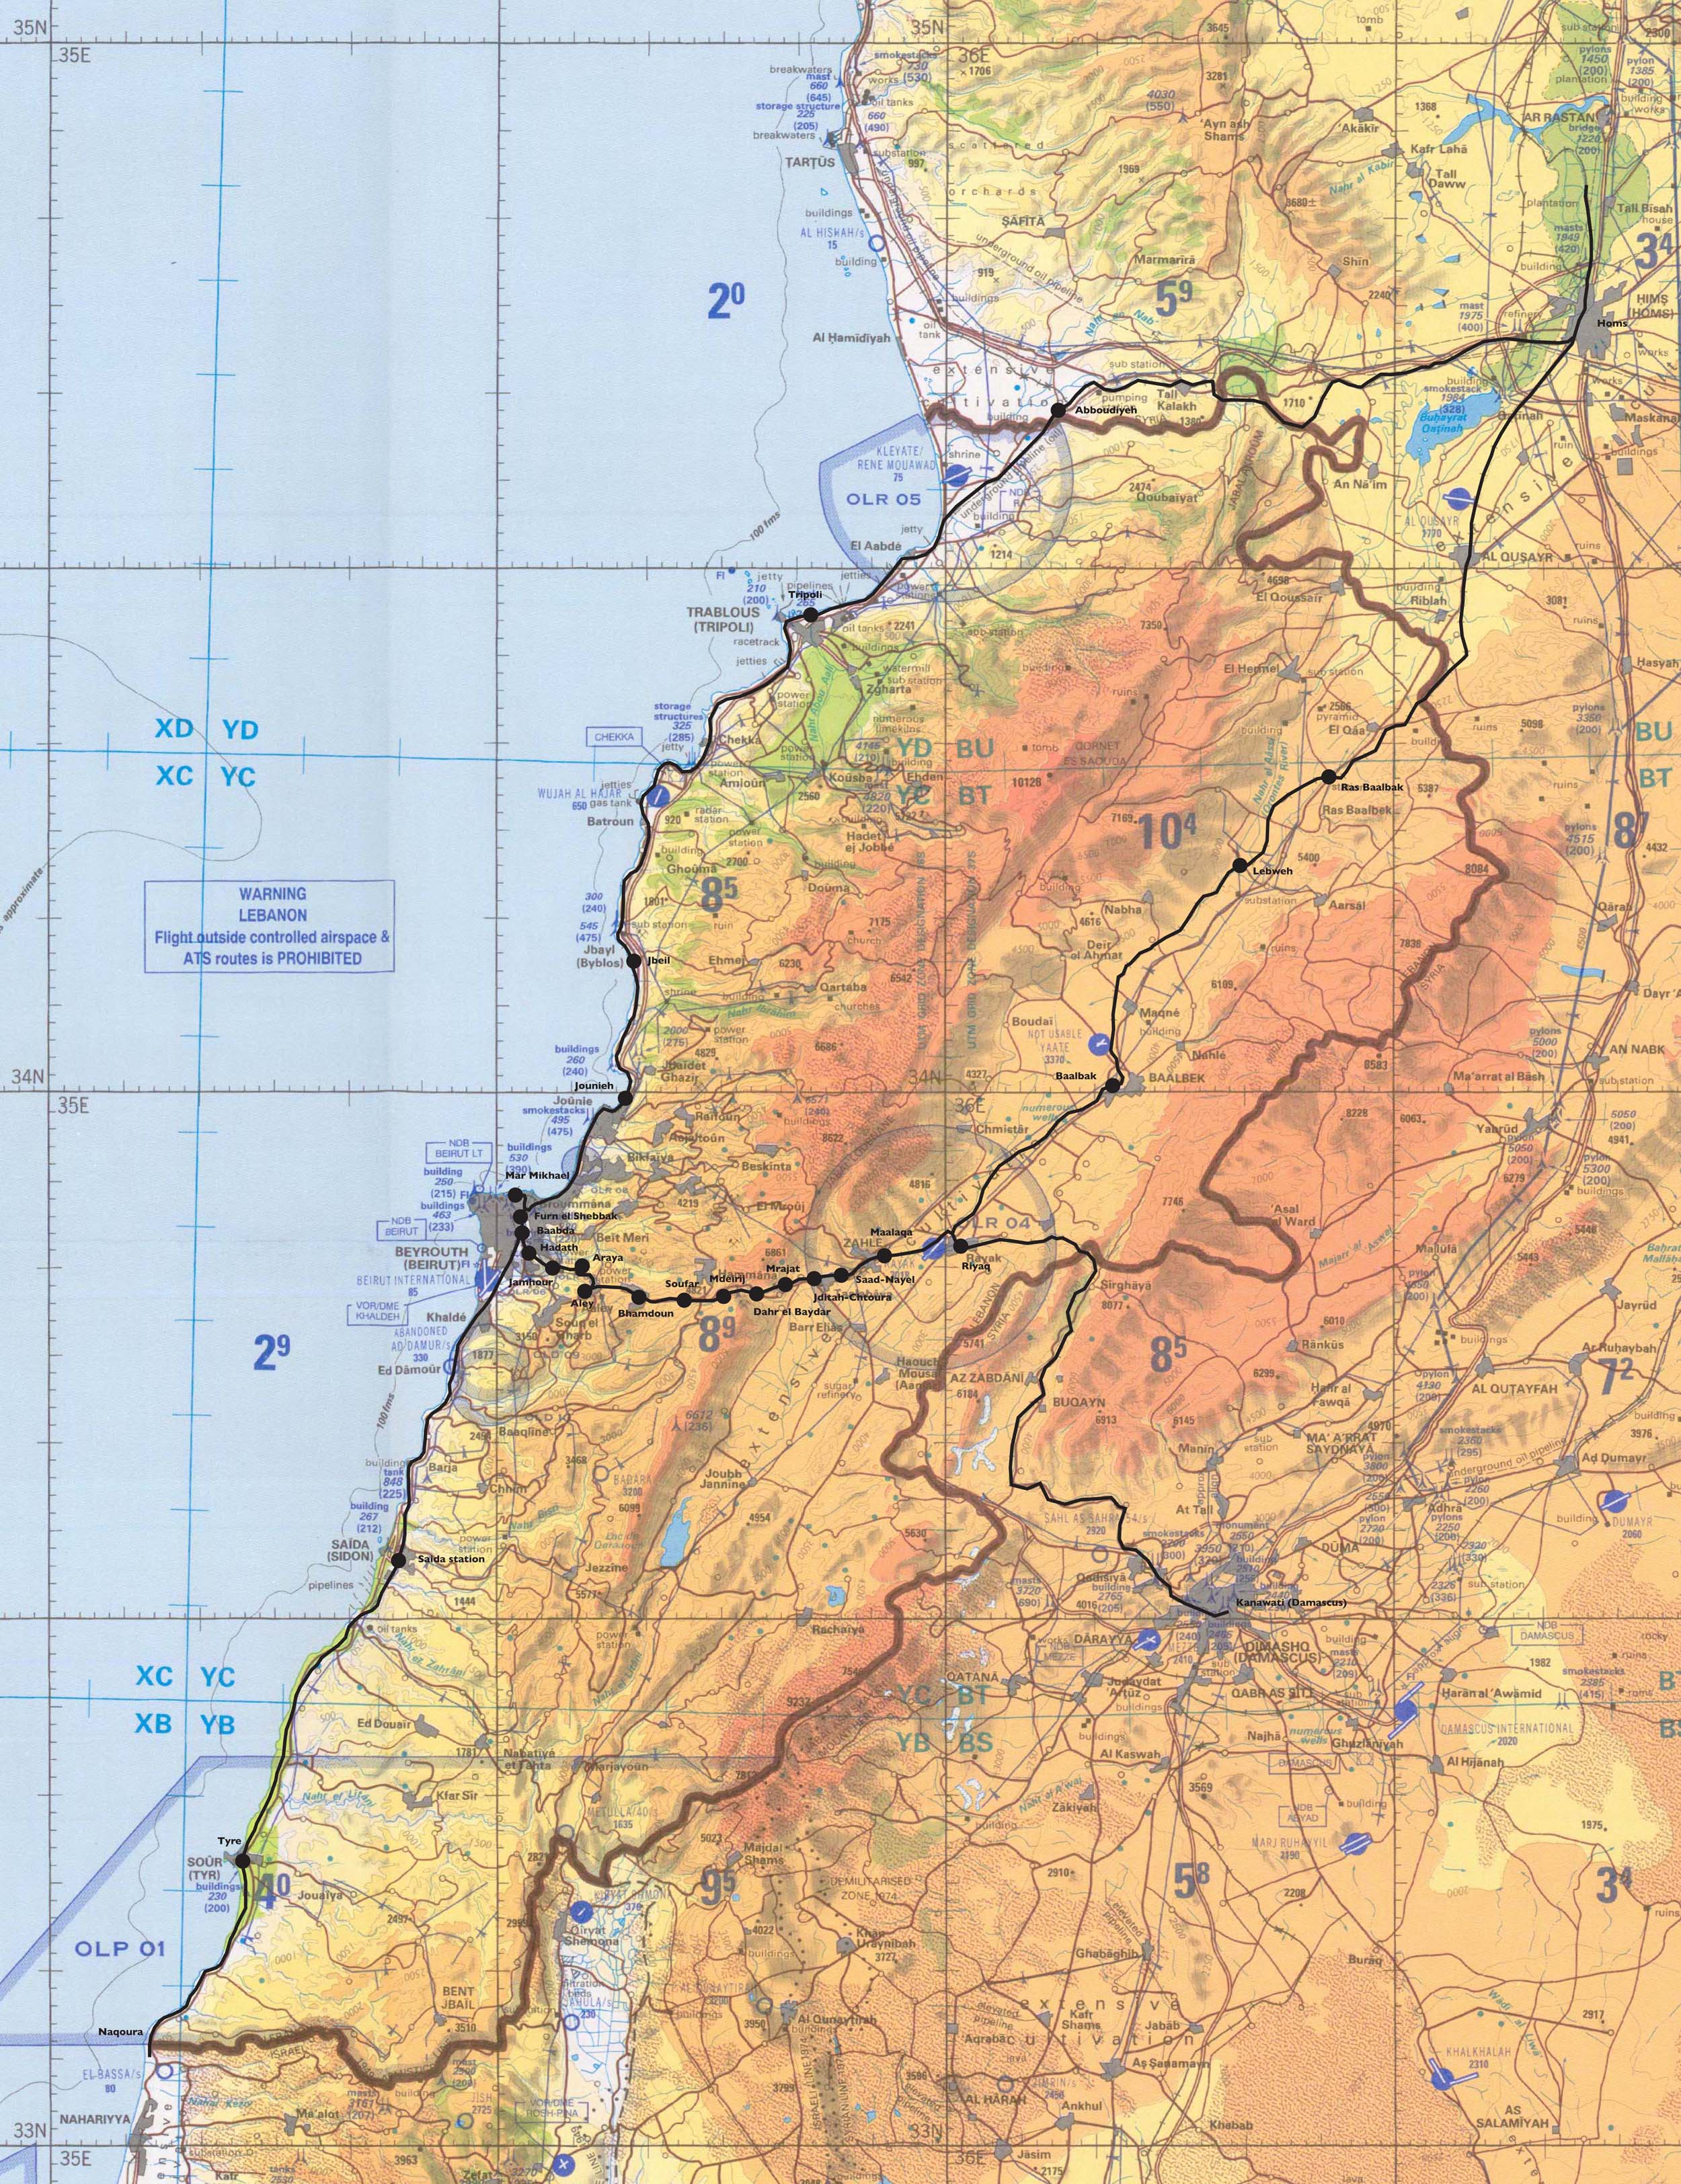 Detailed topographical map of Lebanon Lebanon detailed